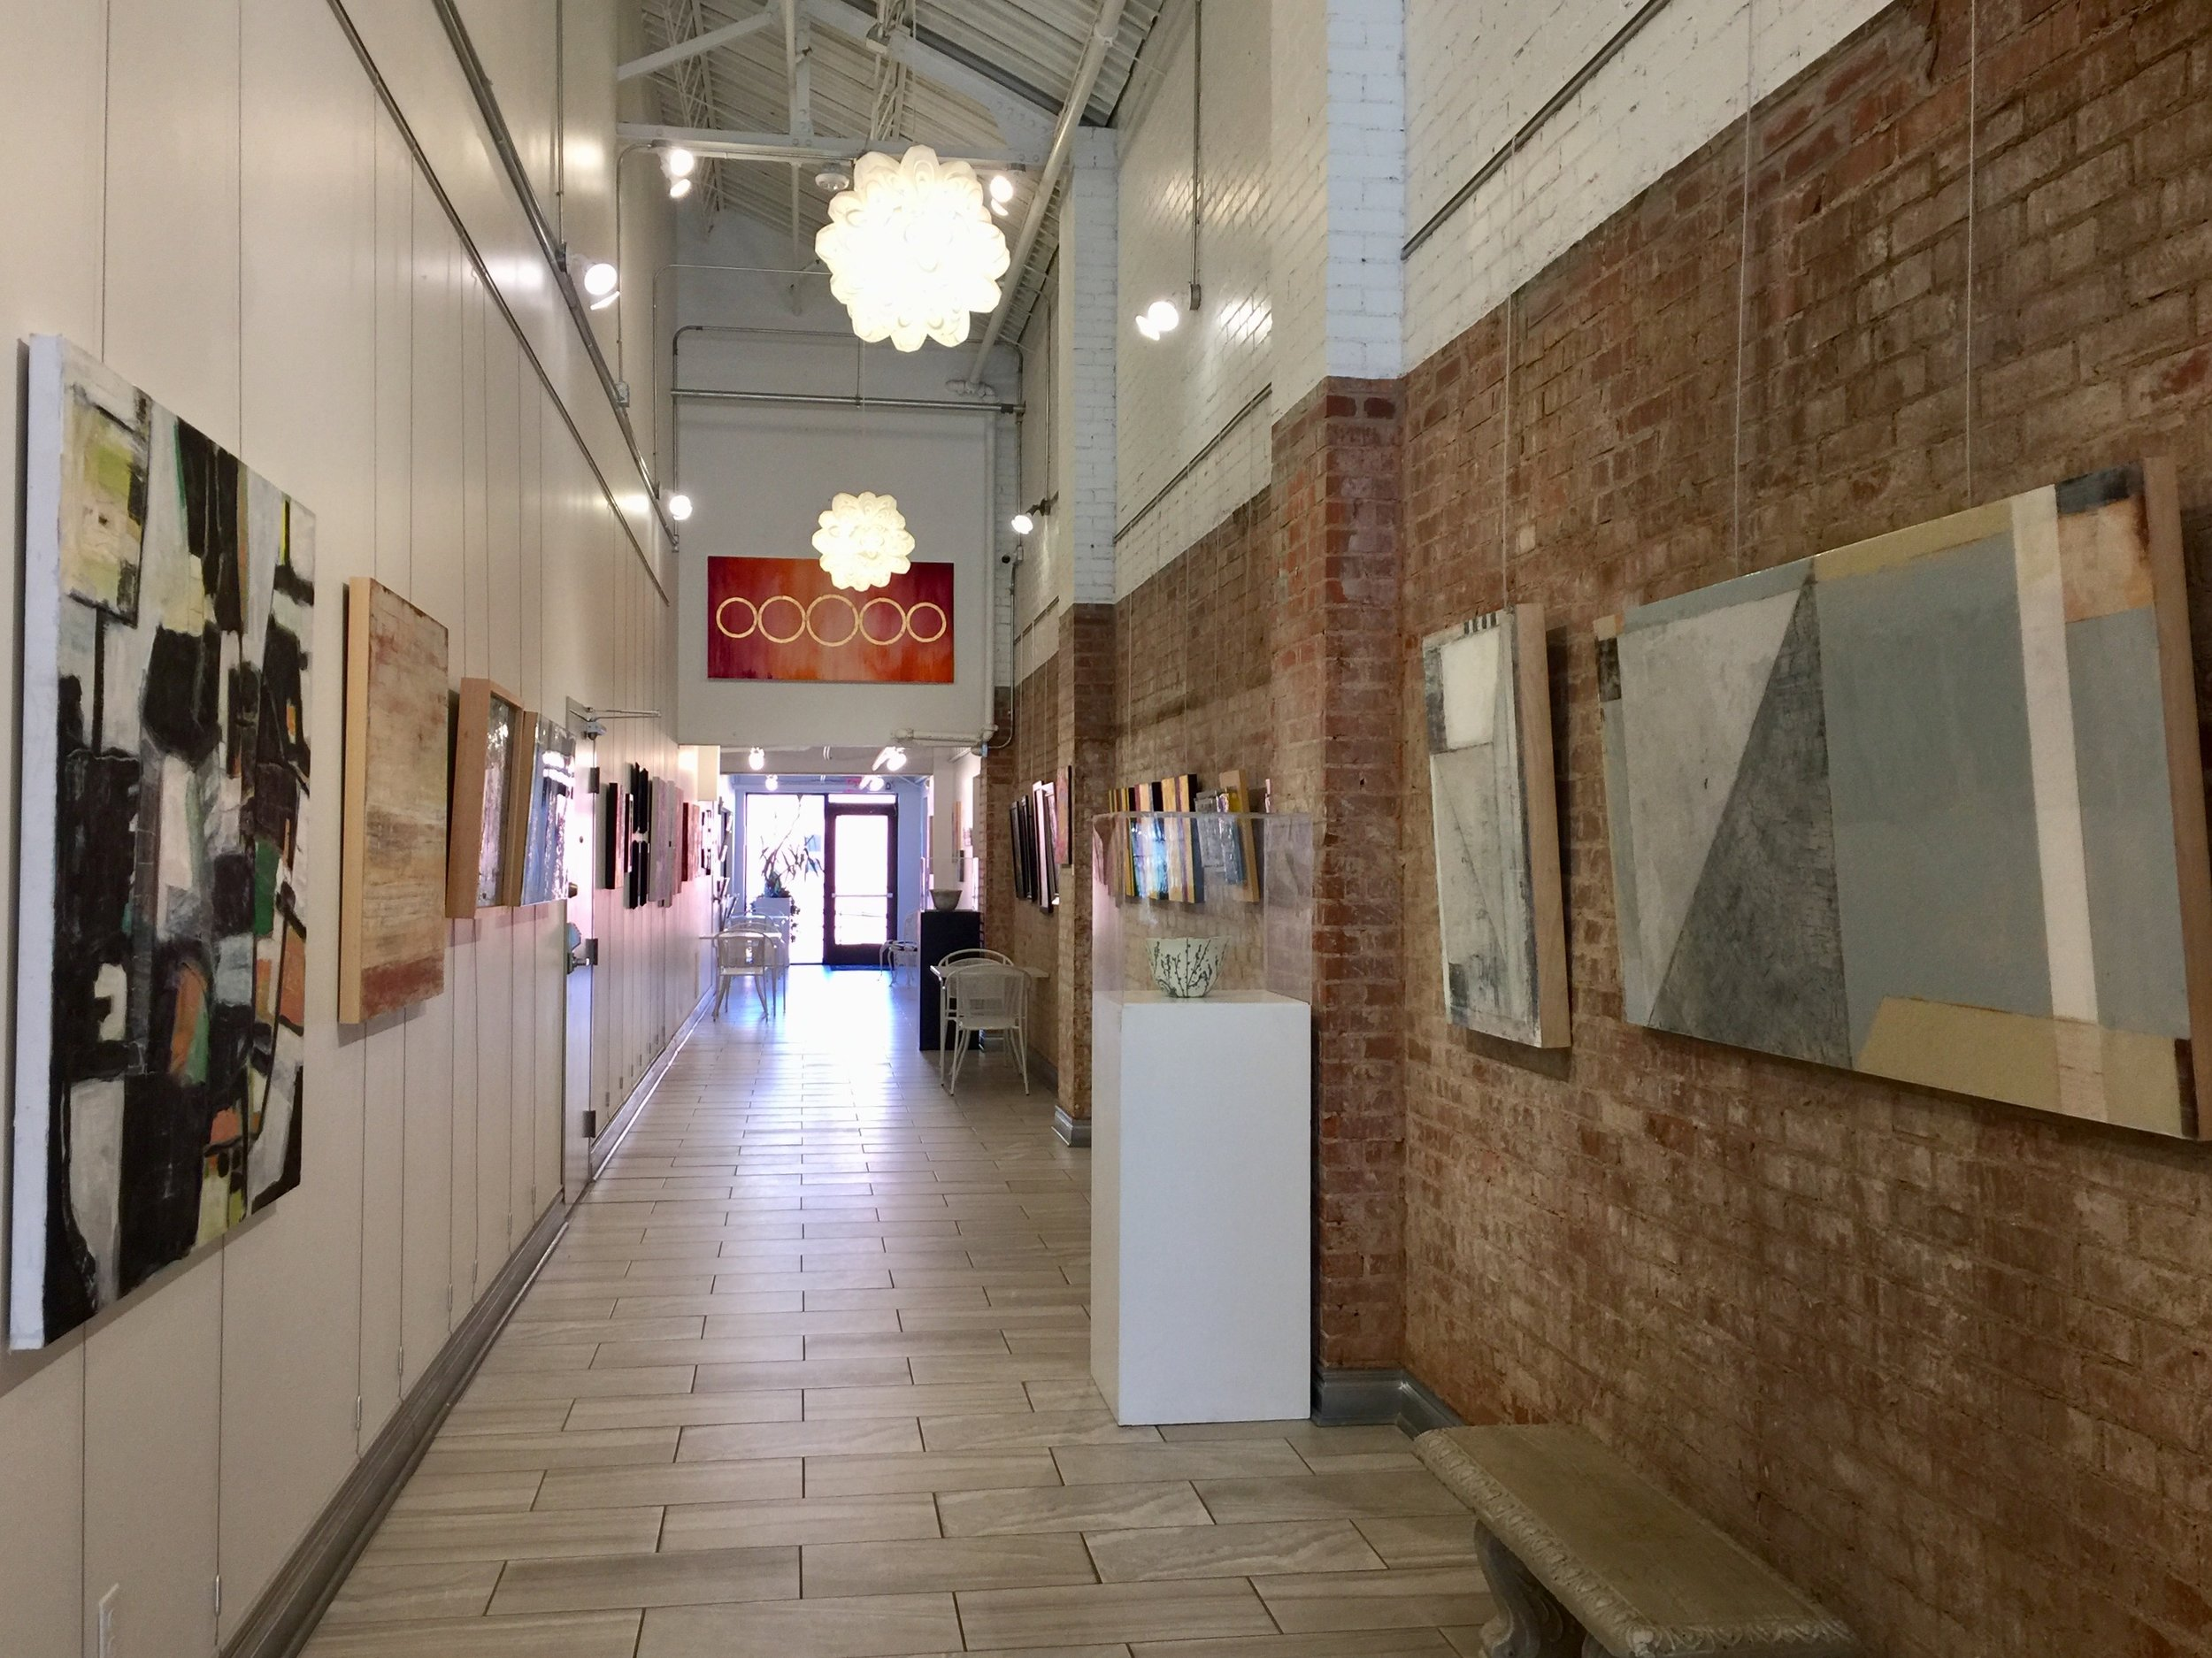 Installation view facing North, featuring Katie Henderson on the left and Christie Owen on the right